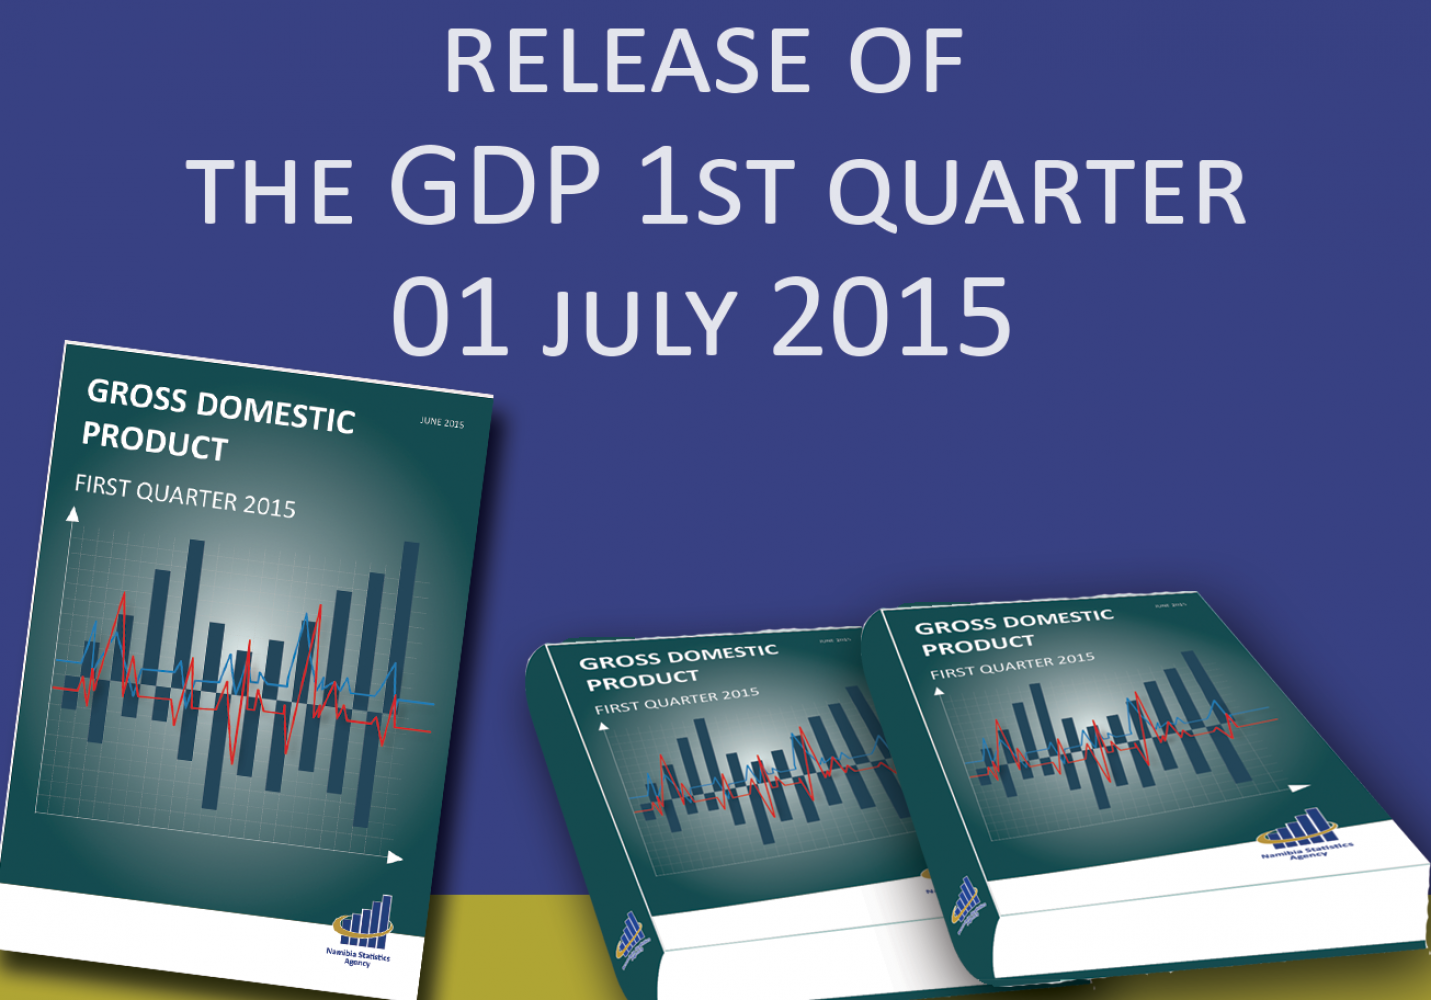 First Quarter GDP Report comming soon